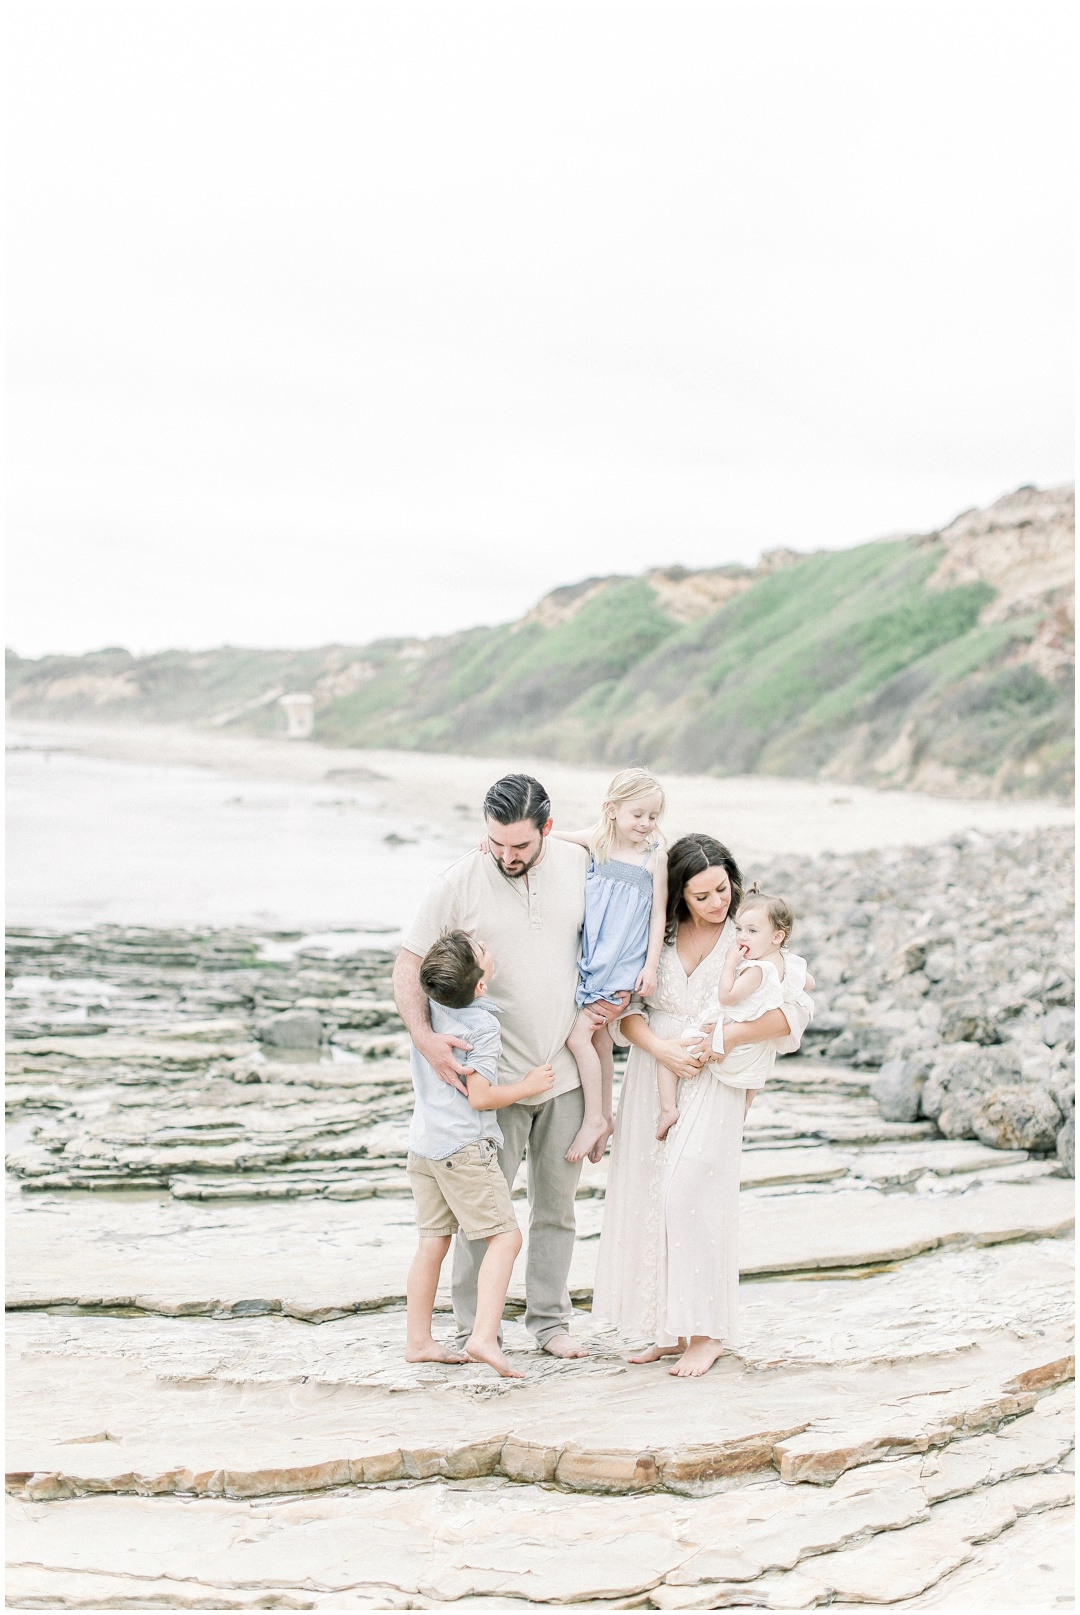 Newport_Beach_Newborn_Light_Airy_Natural_Photographer_Newport_Beach_Photographer_Orange_County_Family_Photographer_Cori_Kleckner_Photography_Newport_Beach_Photographer_Alexis_McElwee__4051.jpg